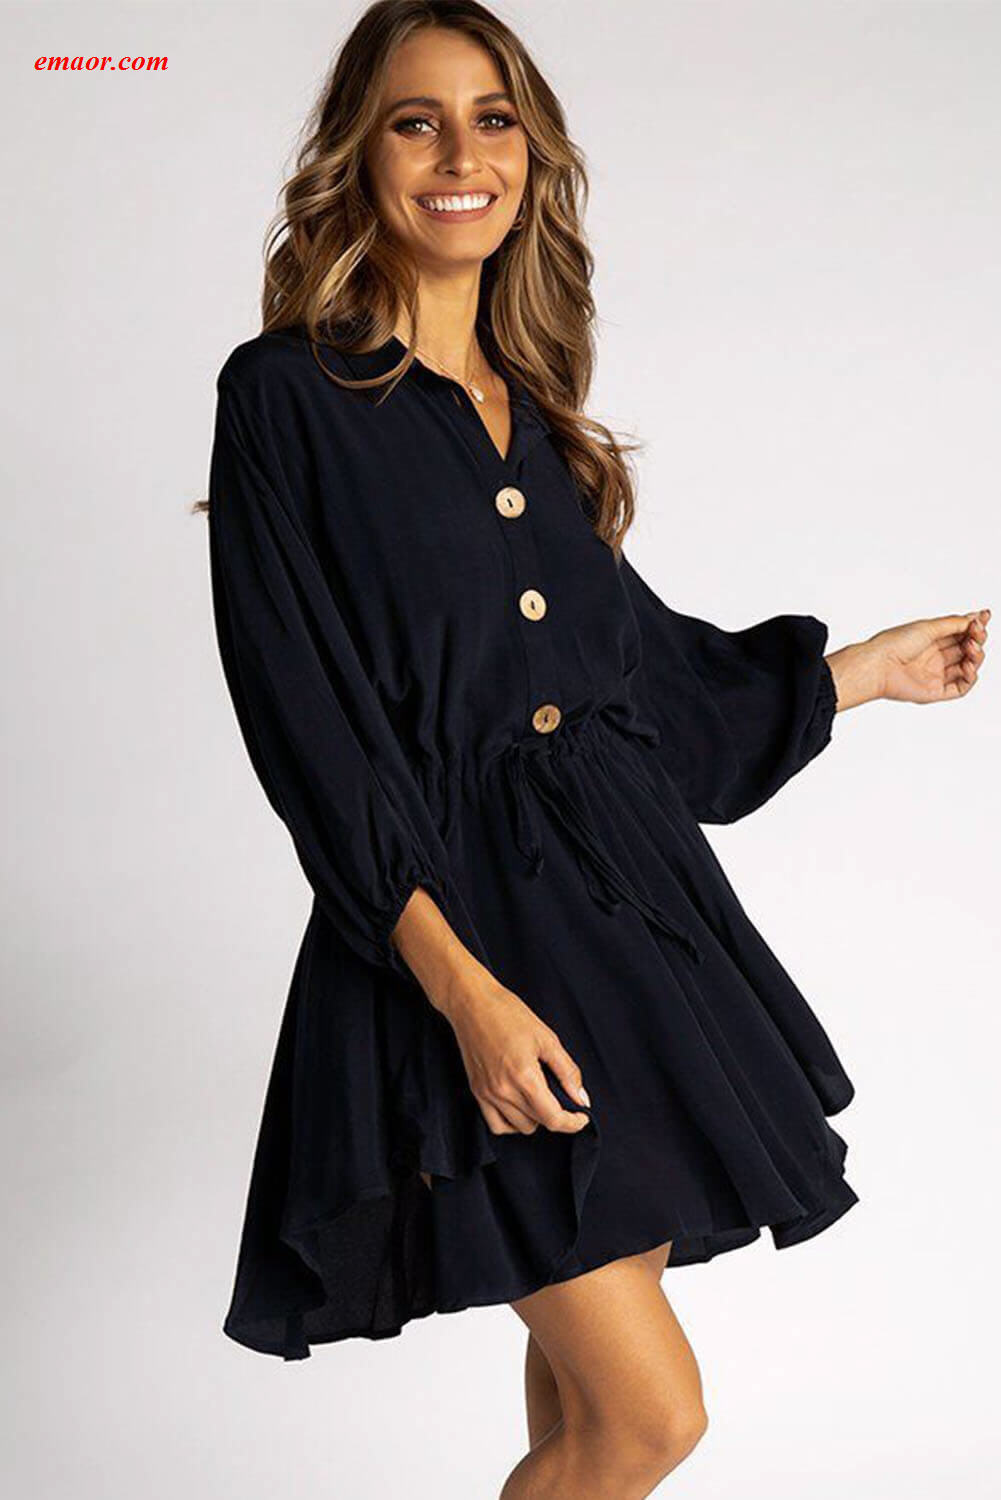 Sunday Afternoon Black Wholesale Dress Mini Dresses on Sale